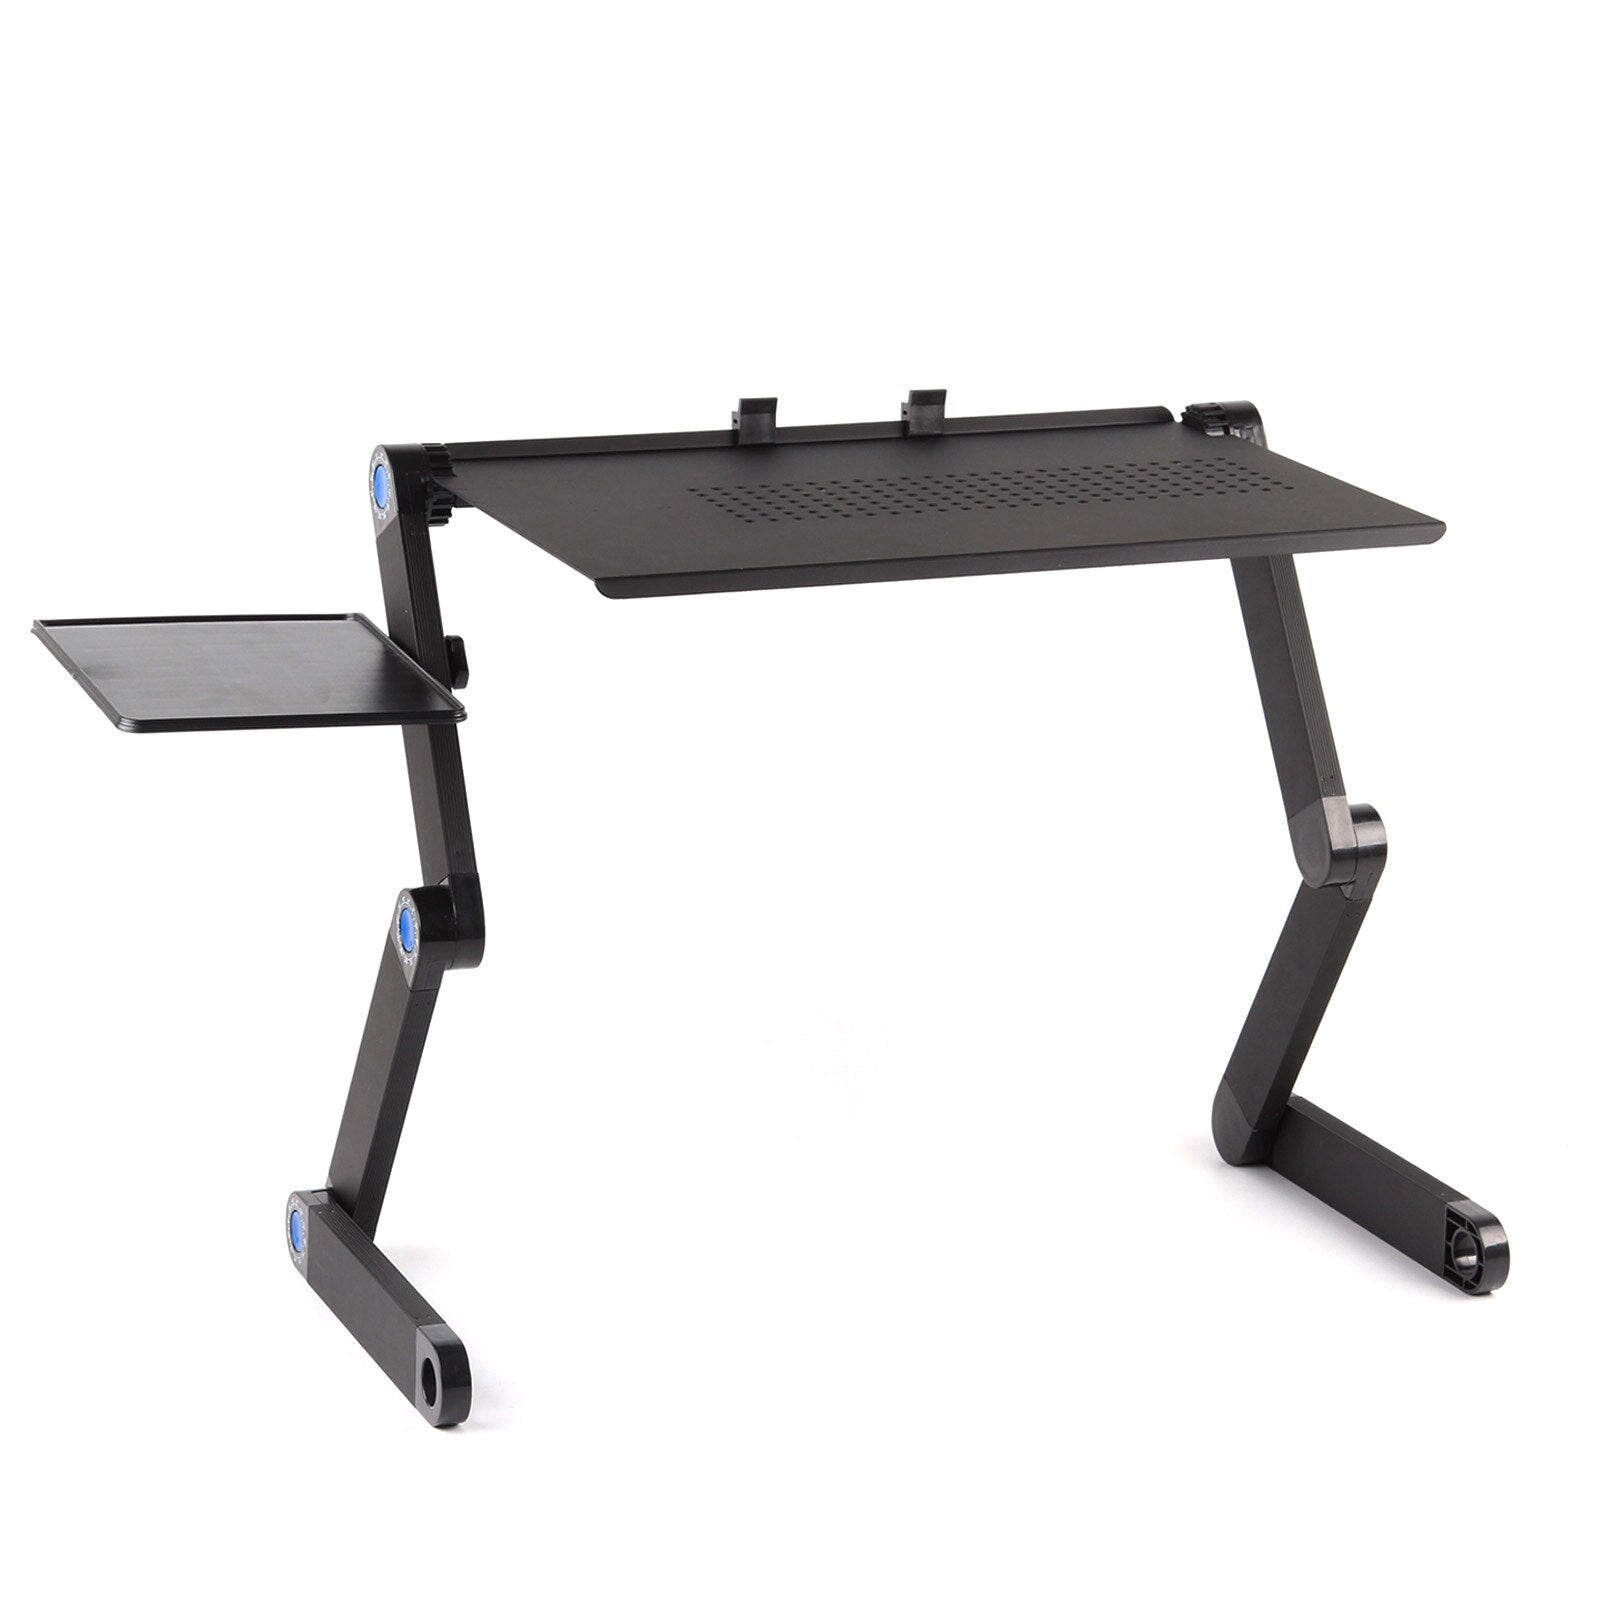 Adjustable Aluminum Laptop Desk Computer Desk Portable TV Bed Lapdesk Table Stand - Shop@Peterpan Store